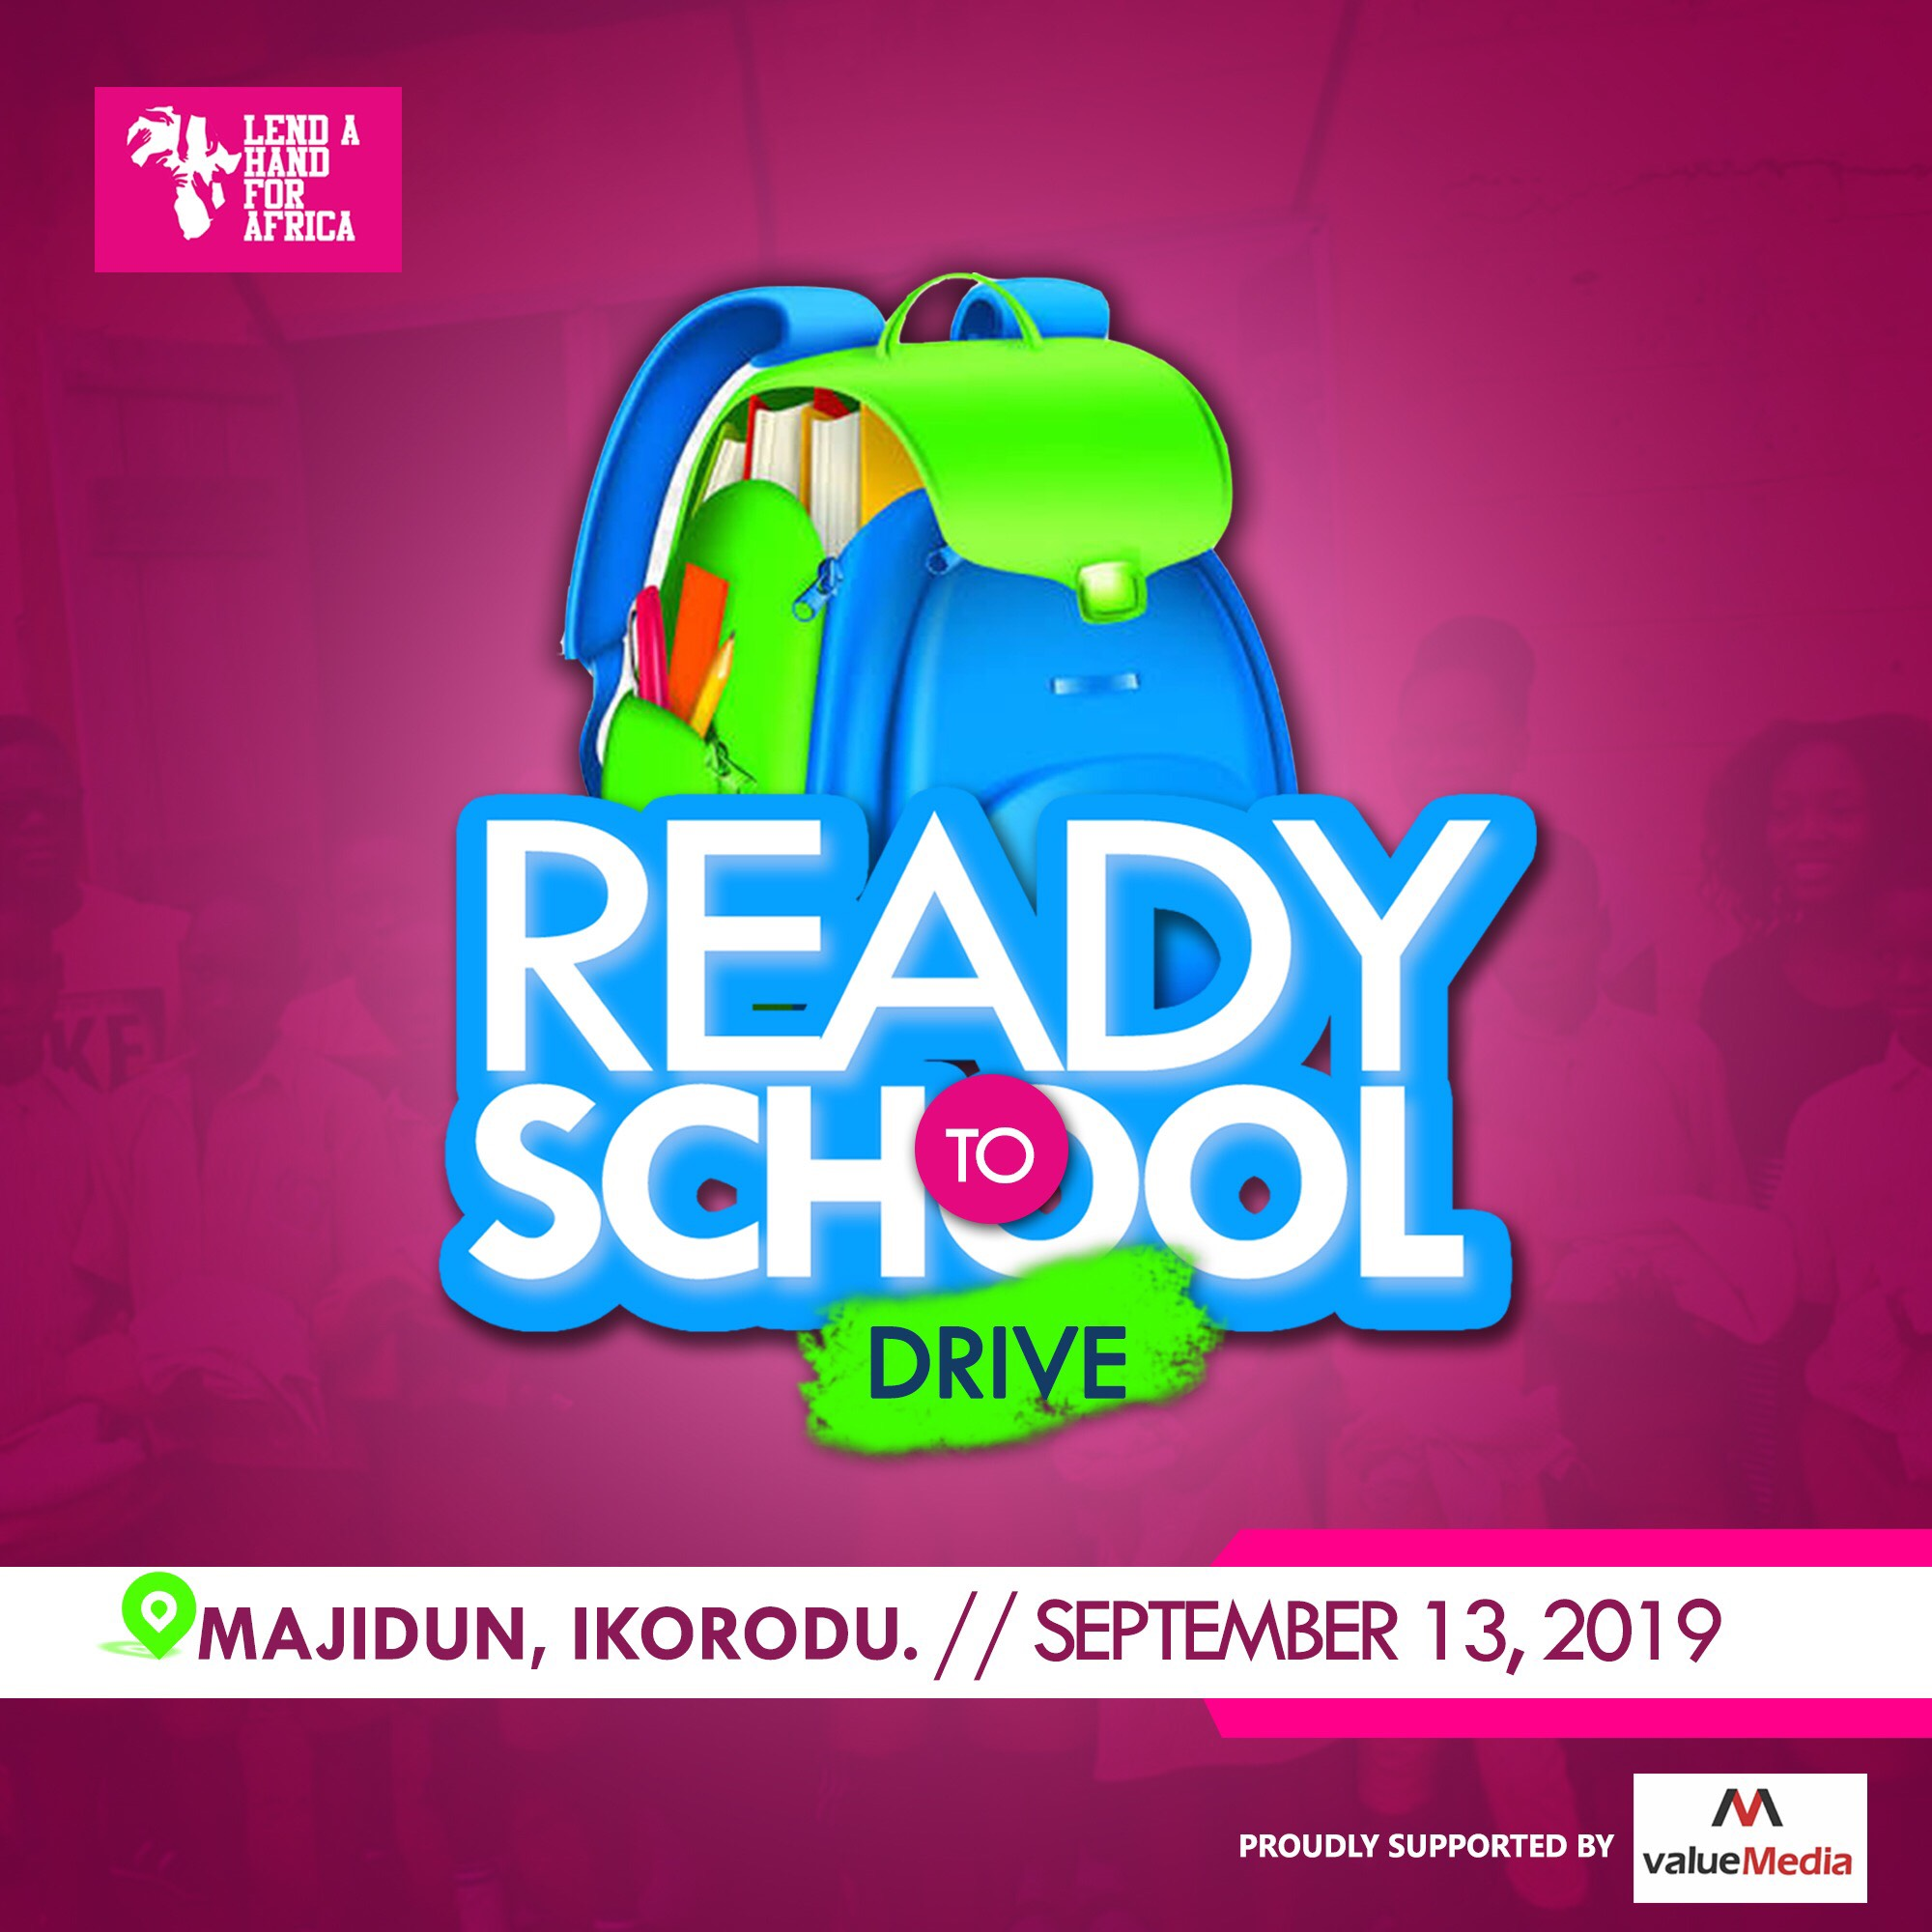 #Readytoschool Drive Education